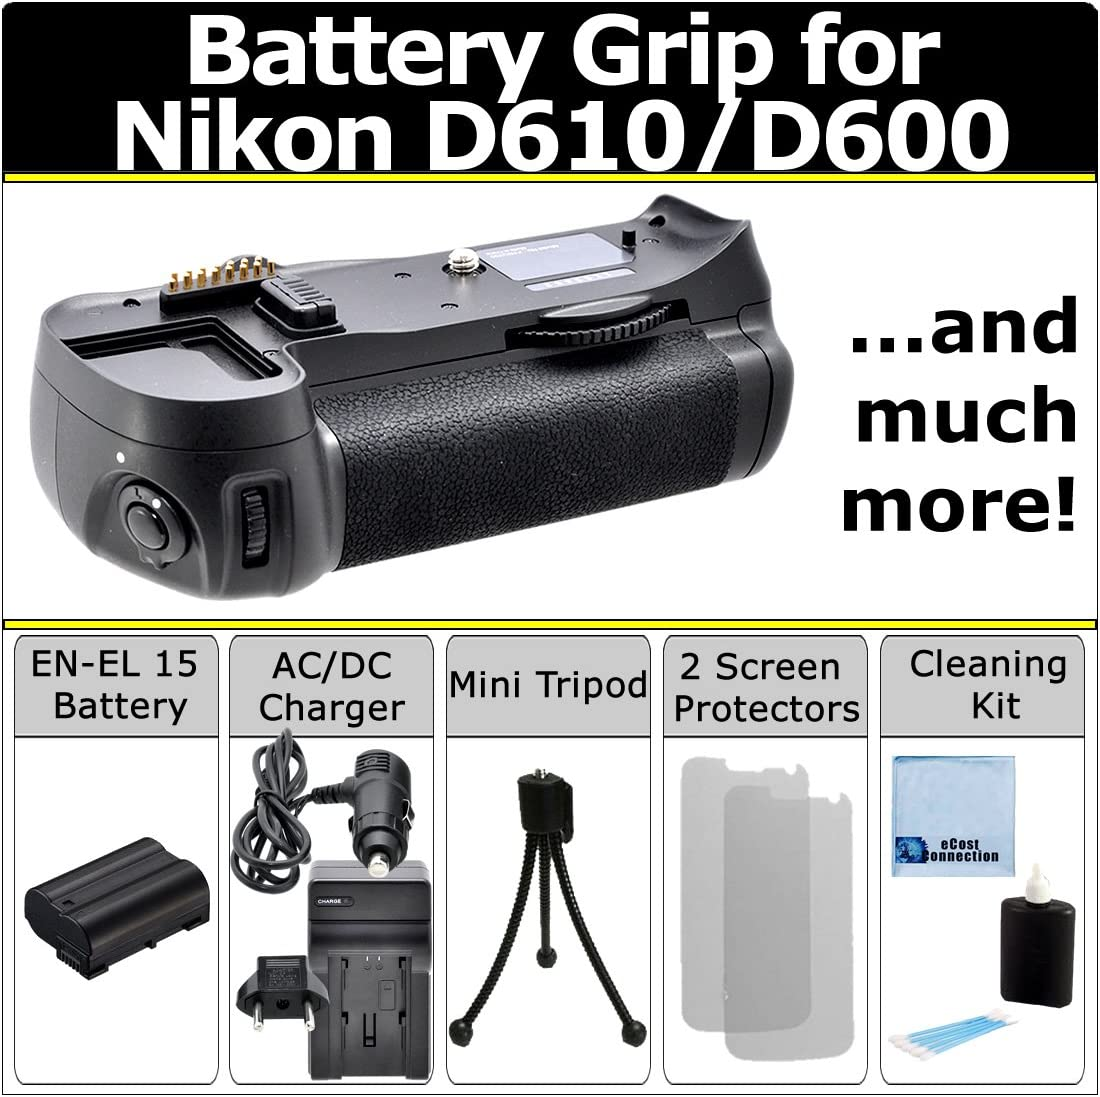 Qty 4 Replacement EN-EL15 Batteries Battery and Charger Kit for Nikon D600 D610 Digital SLR Camera Includes Vertical Battery Grip Rapid AC//DC Charger Micro Fiber Cleaning Cloth